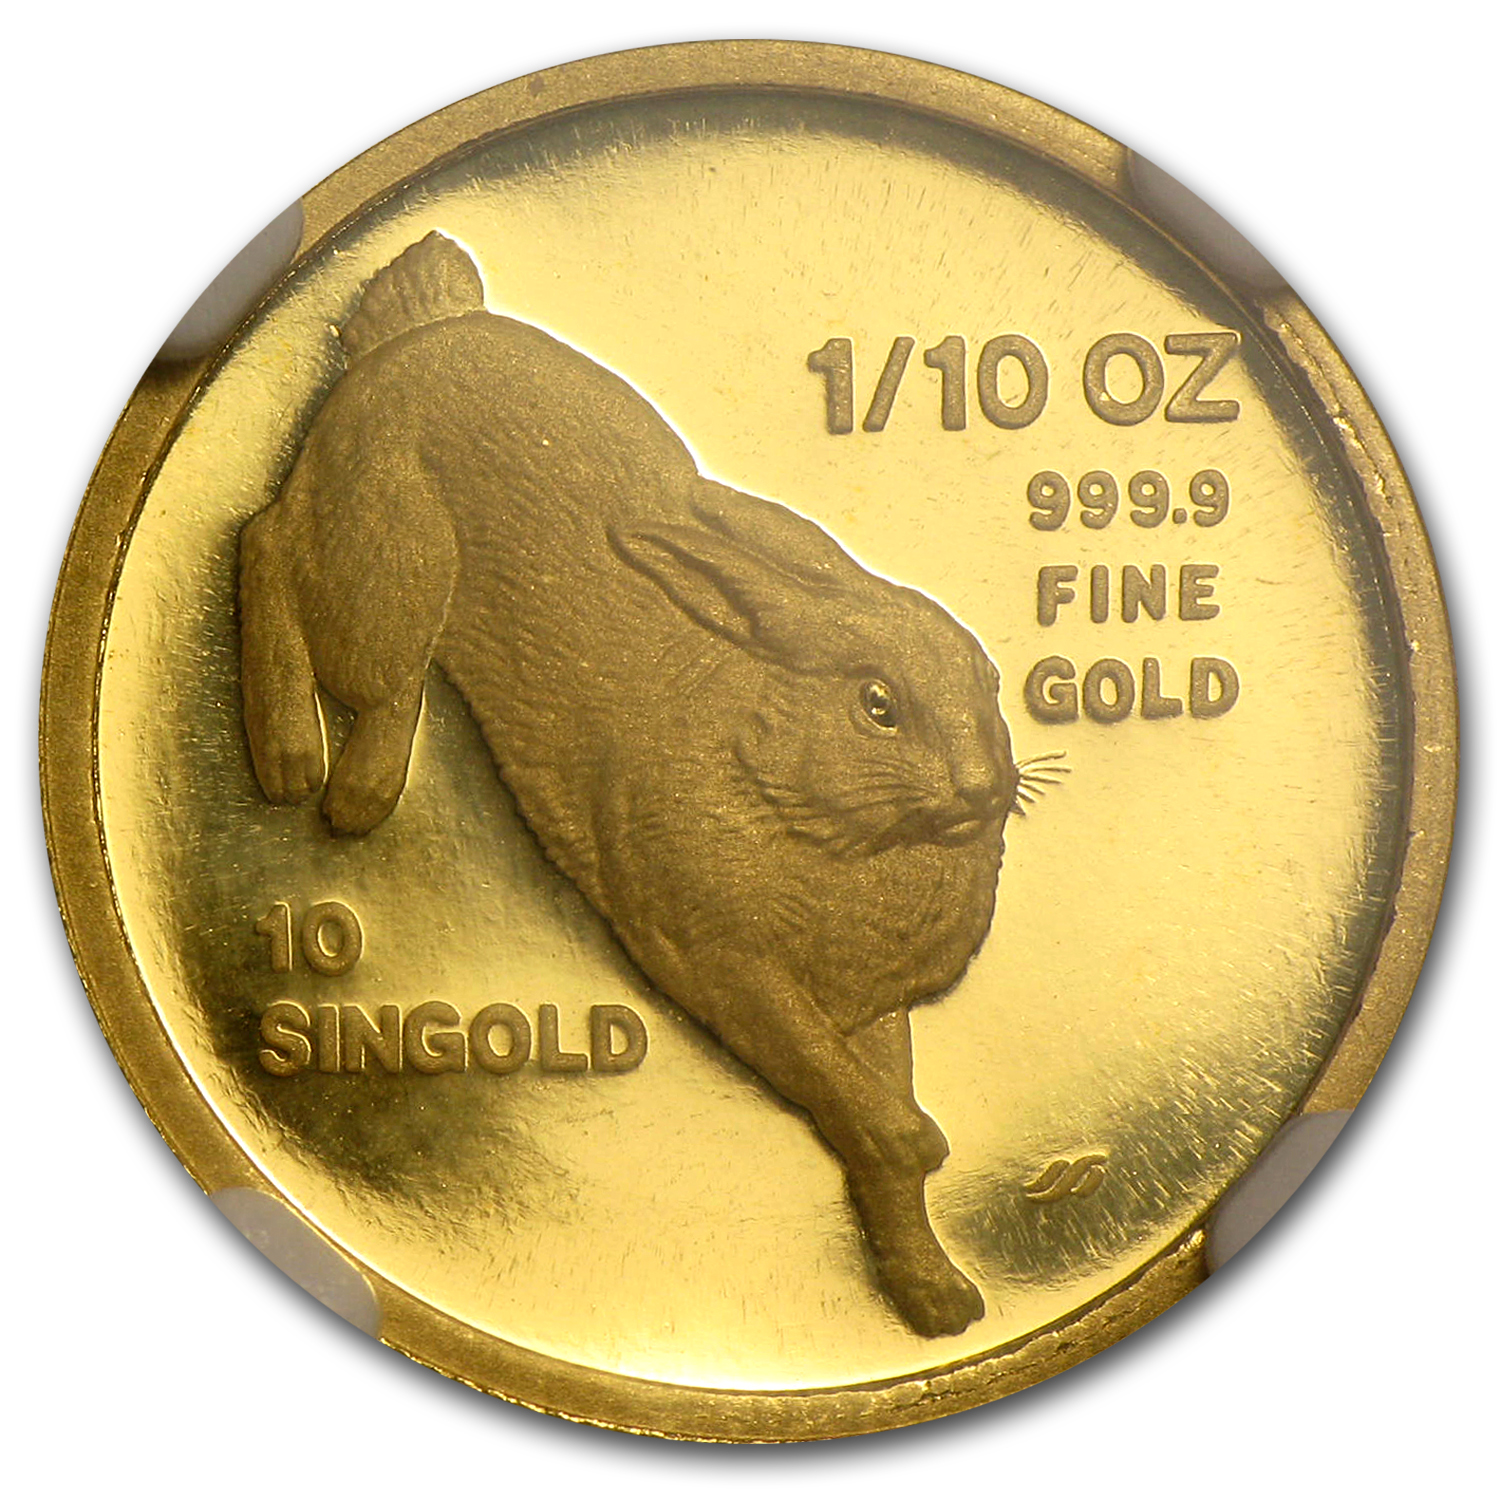 1987 1/10 oz Gold Singapore 10 Singold Rabbit PF-69 NGC